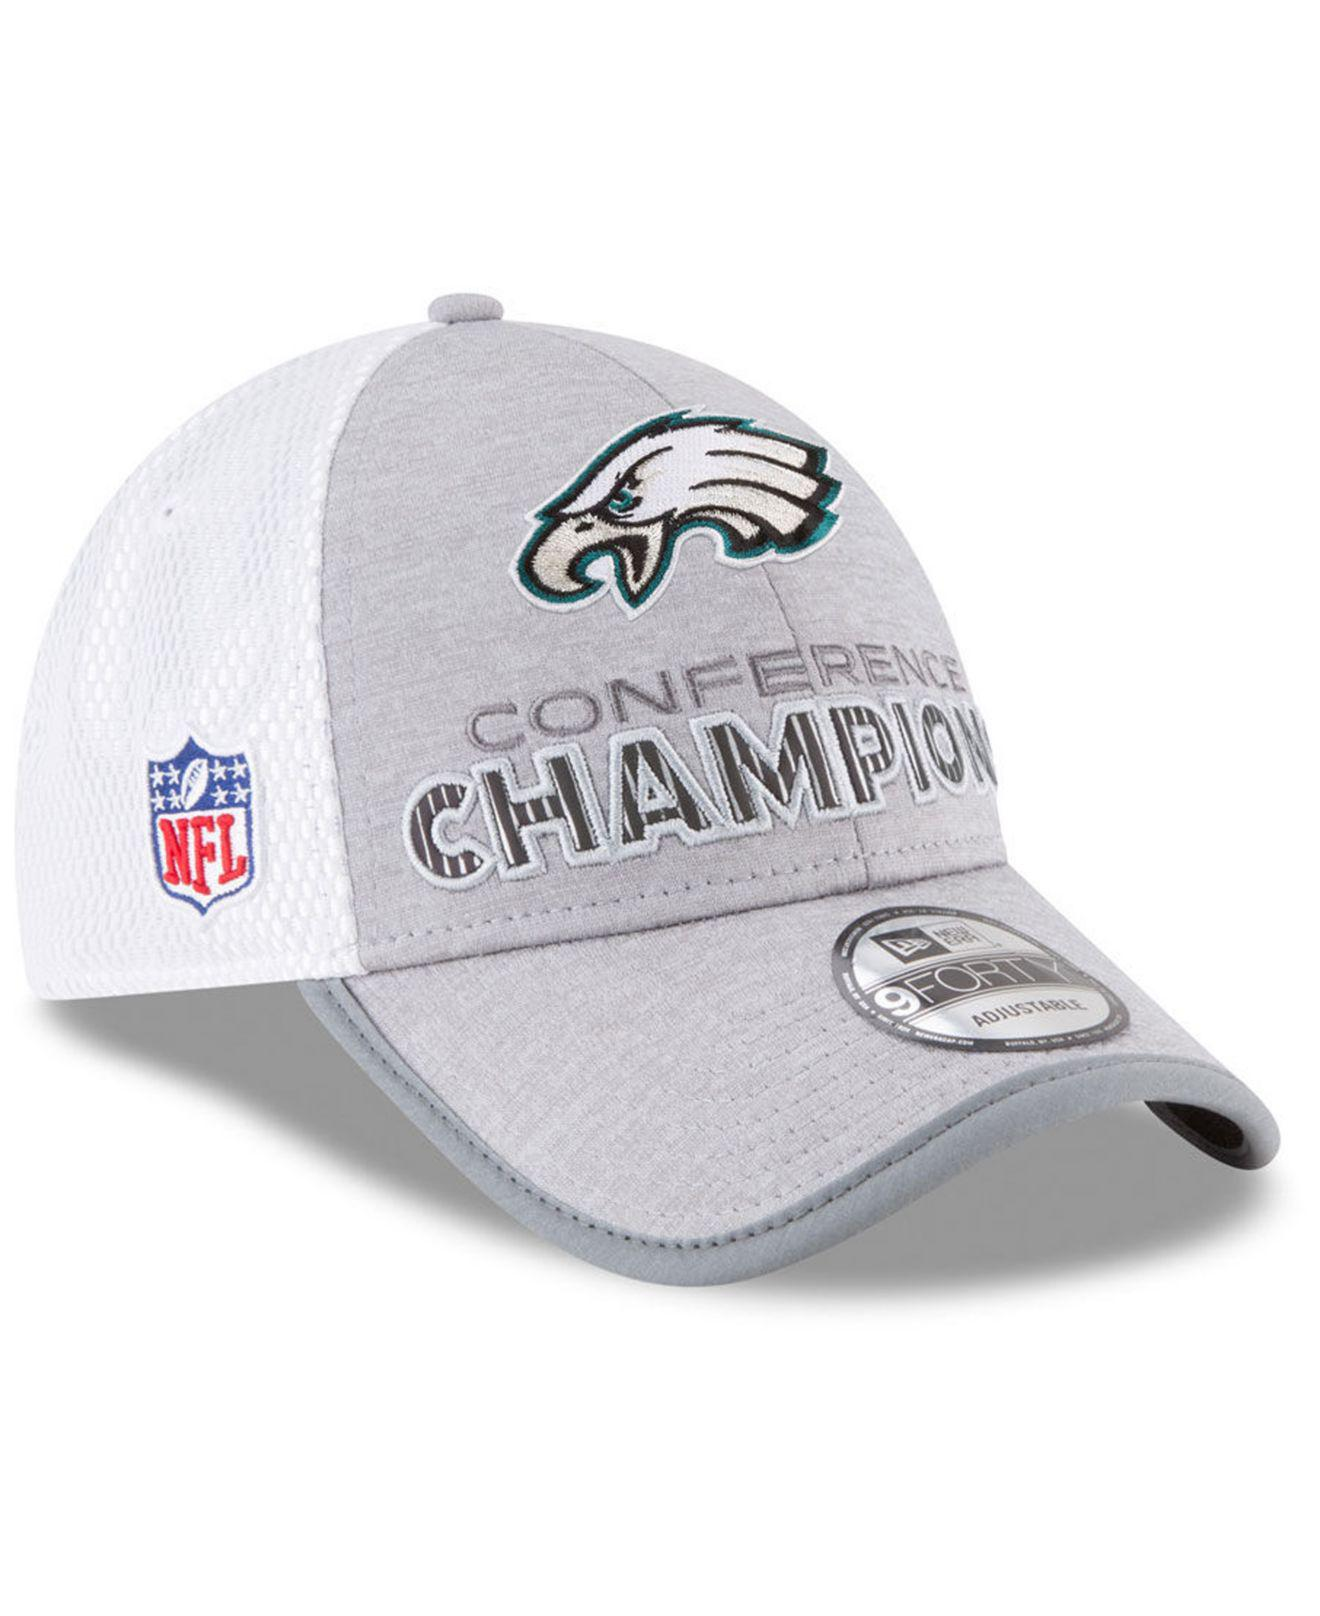 8a4854a02 Lyst - KTZ Philadelphia Eagles Super Bowl Lii Conference Champ ...